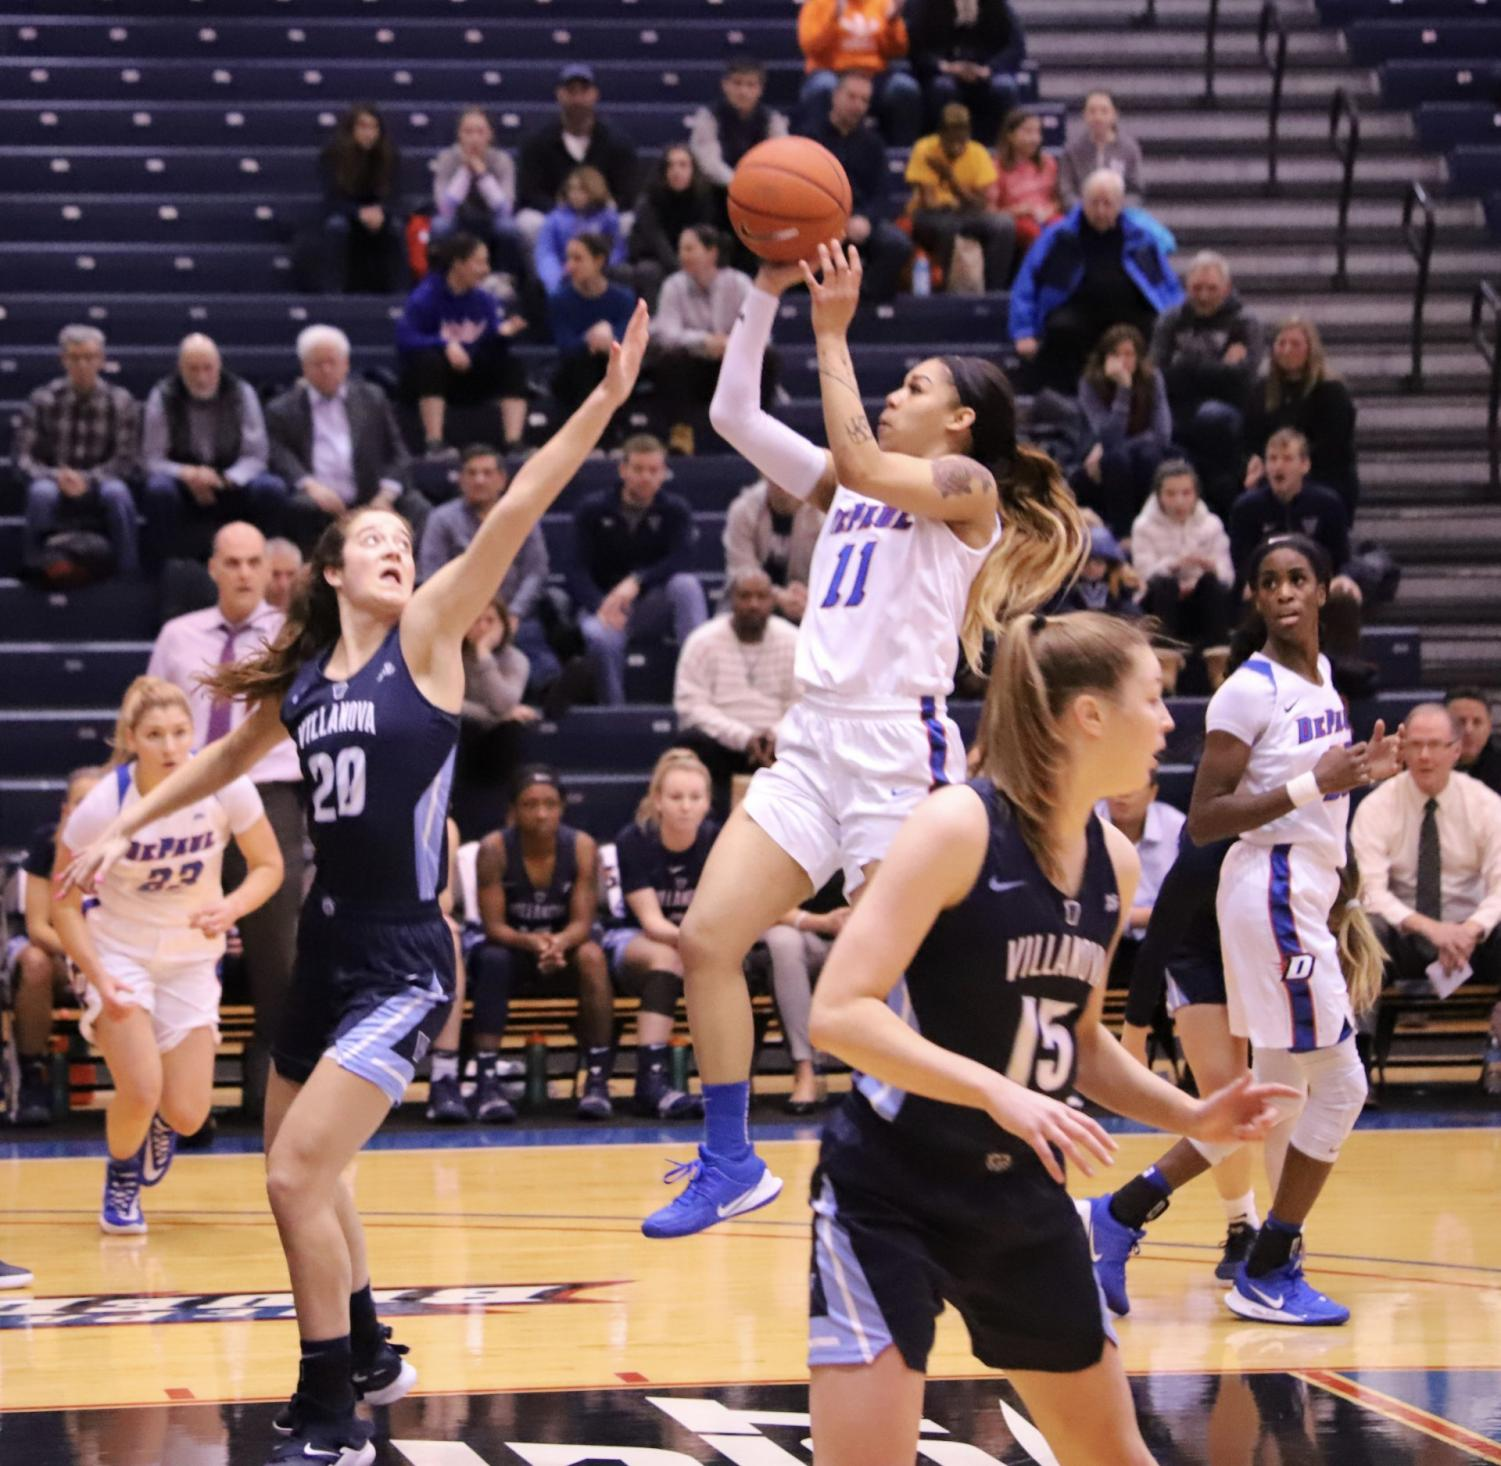 Sonya Morris goes up for a jumper in the lane in the first half against Villanova.